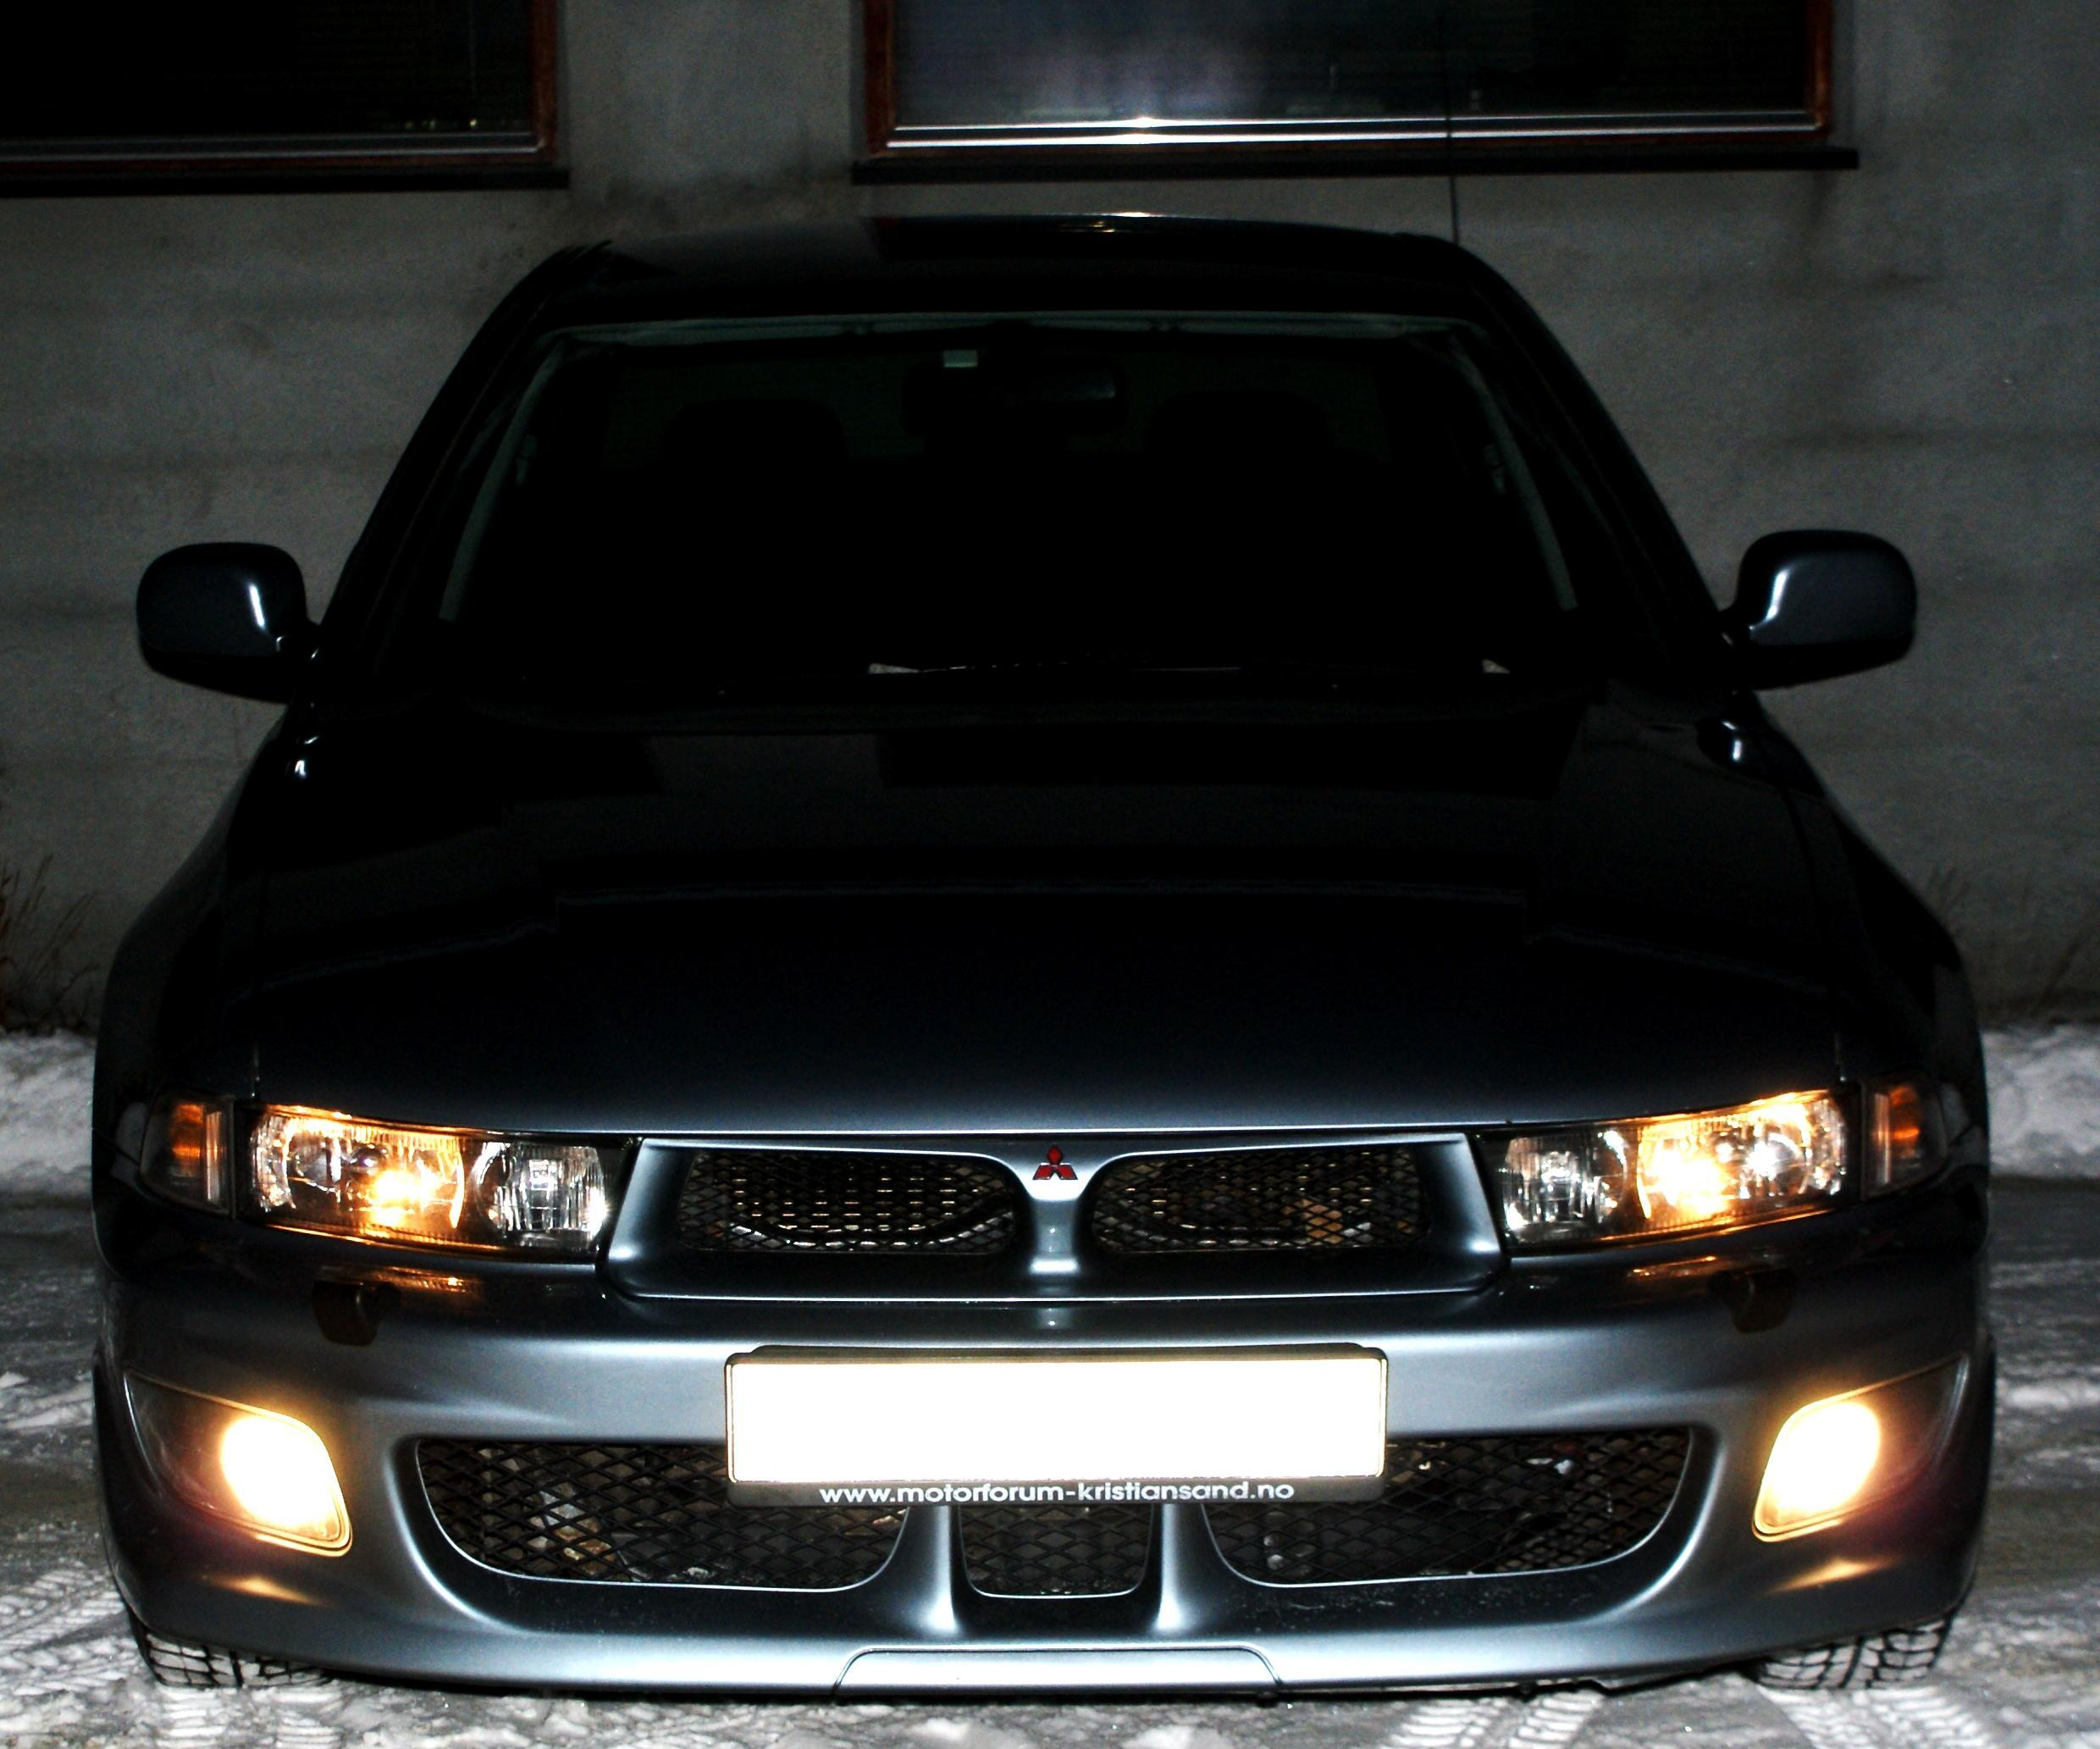 VidarBo 2003 Mitsubishi Galant Specs Photos Modification Info at